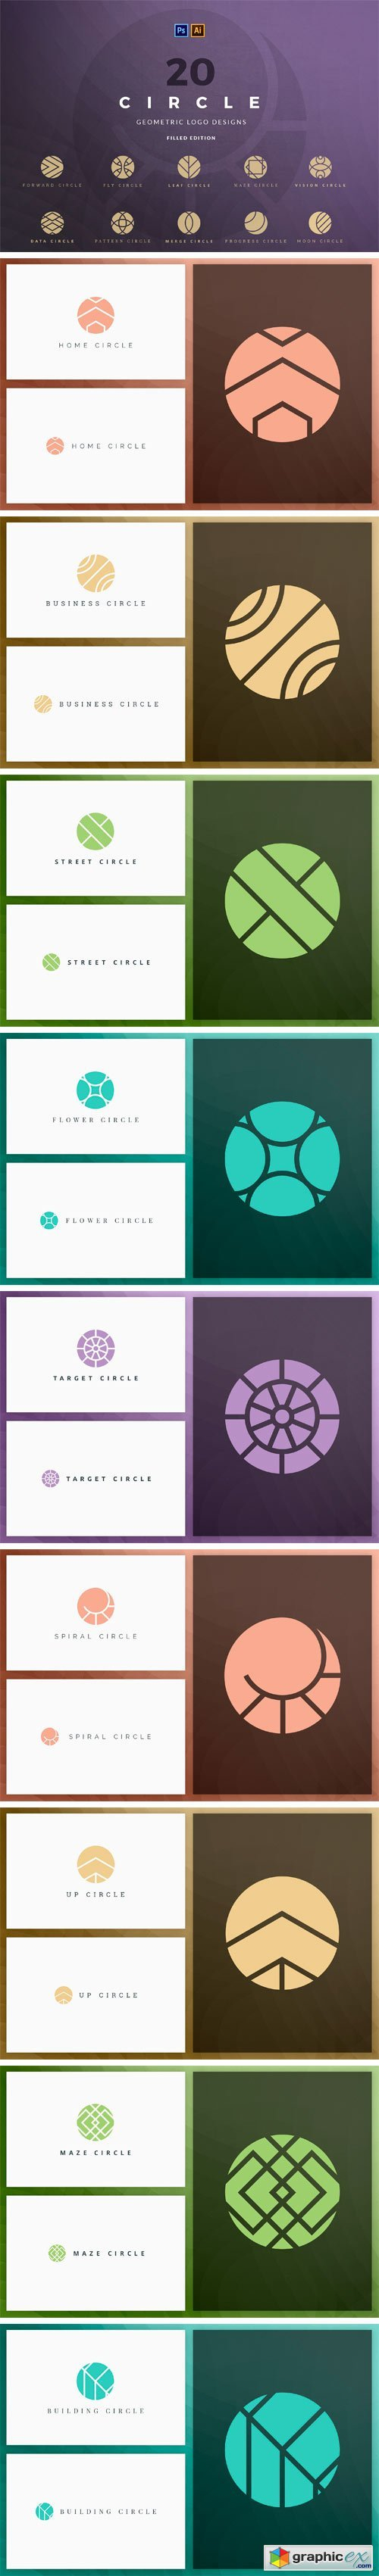 20 Circle Geometric Logos - Filled